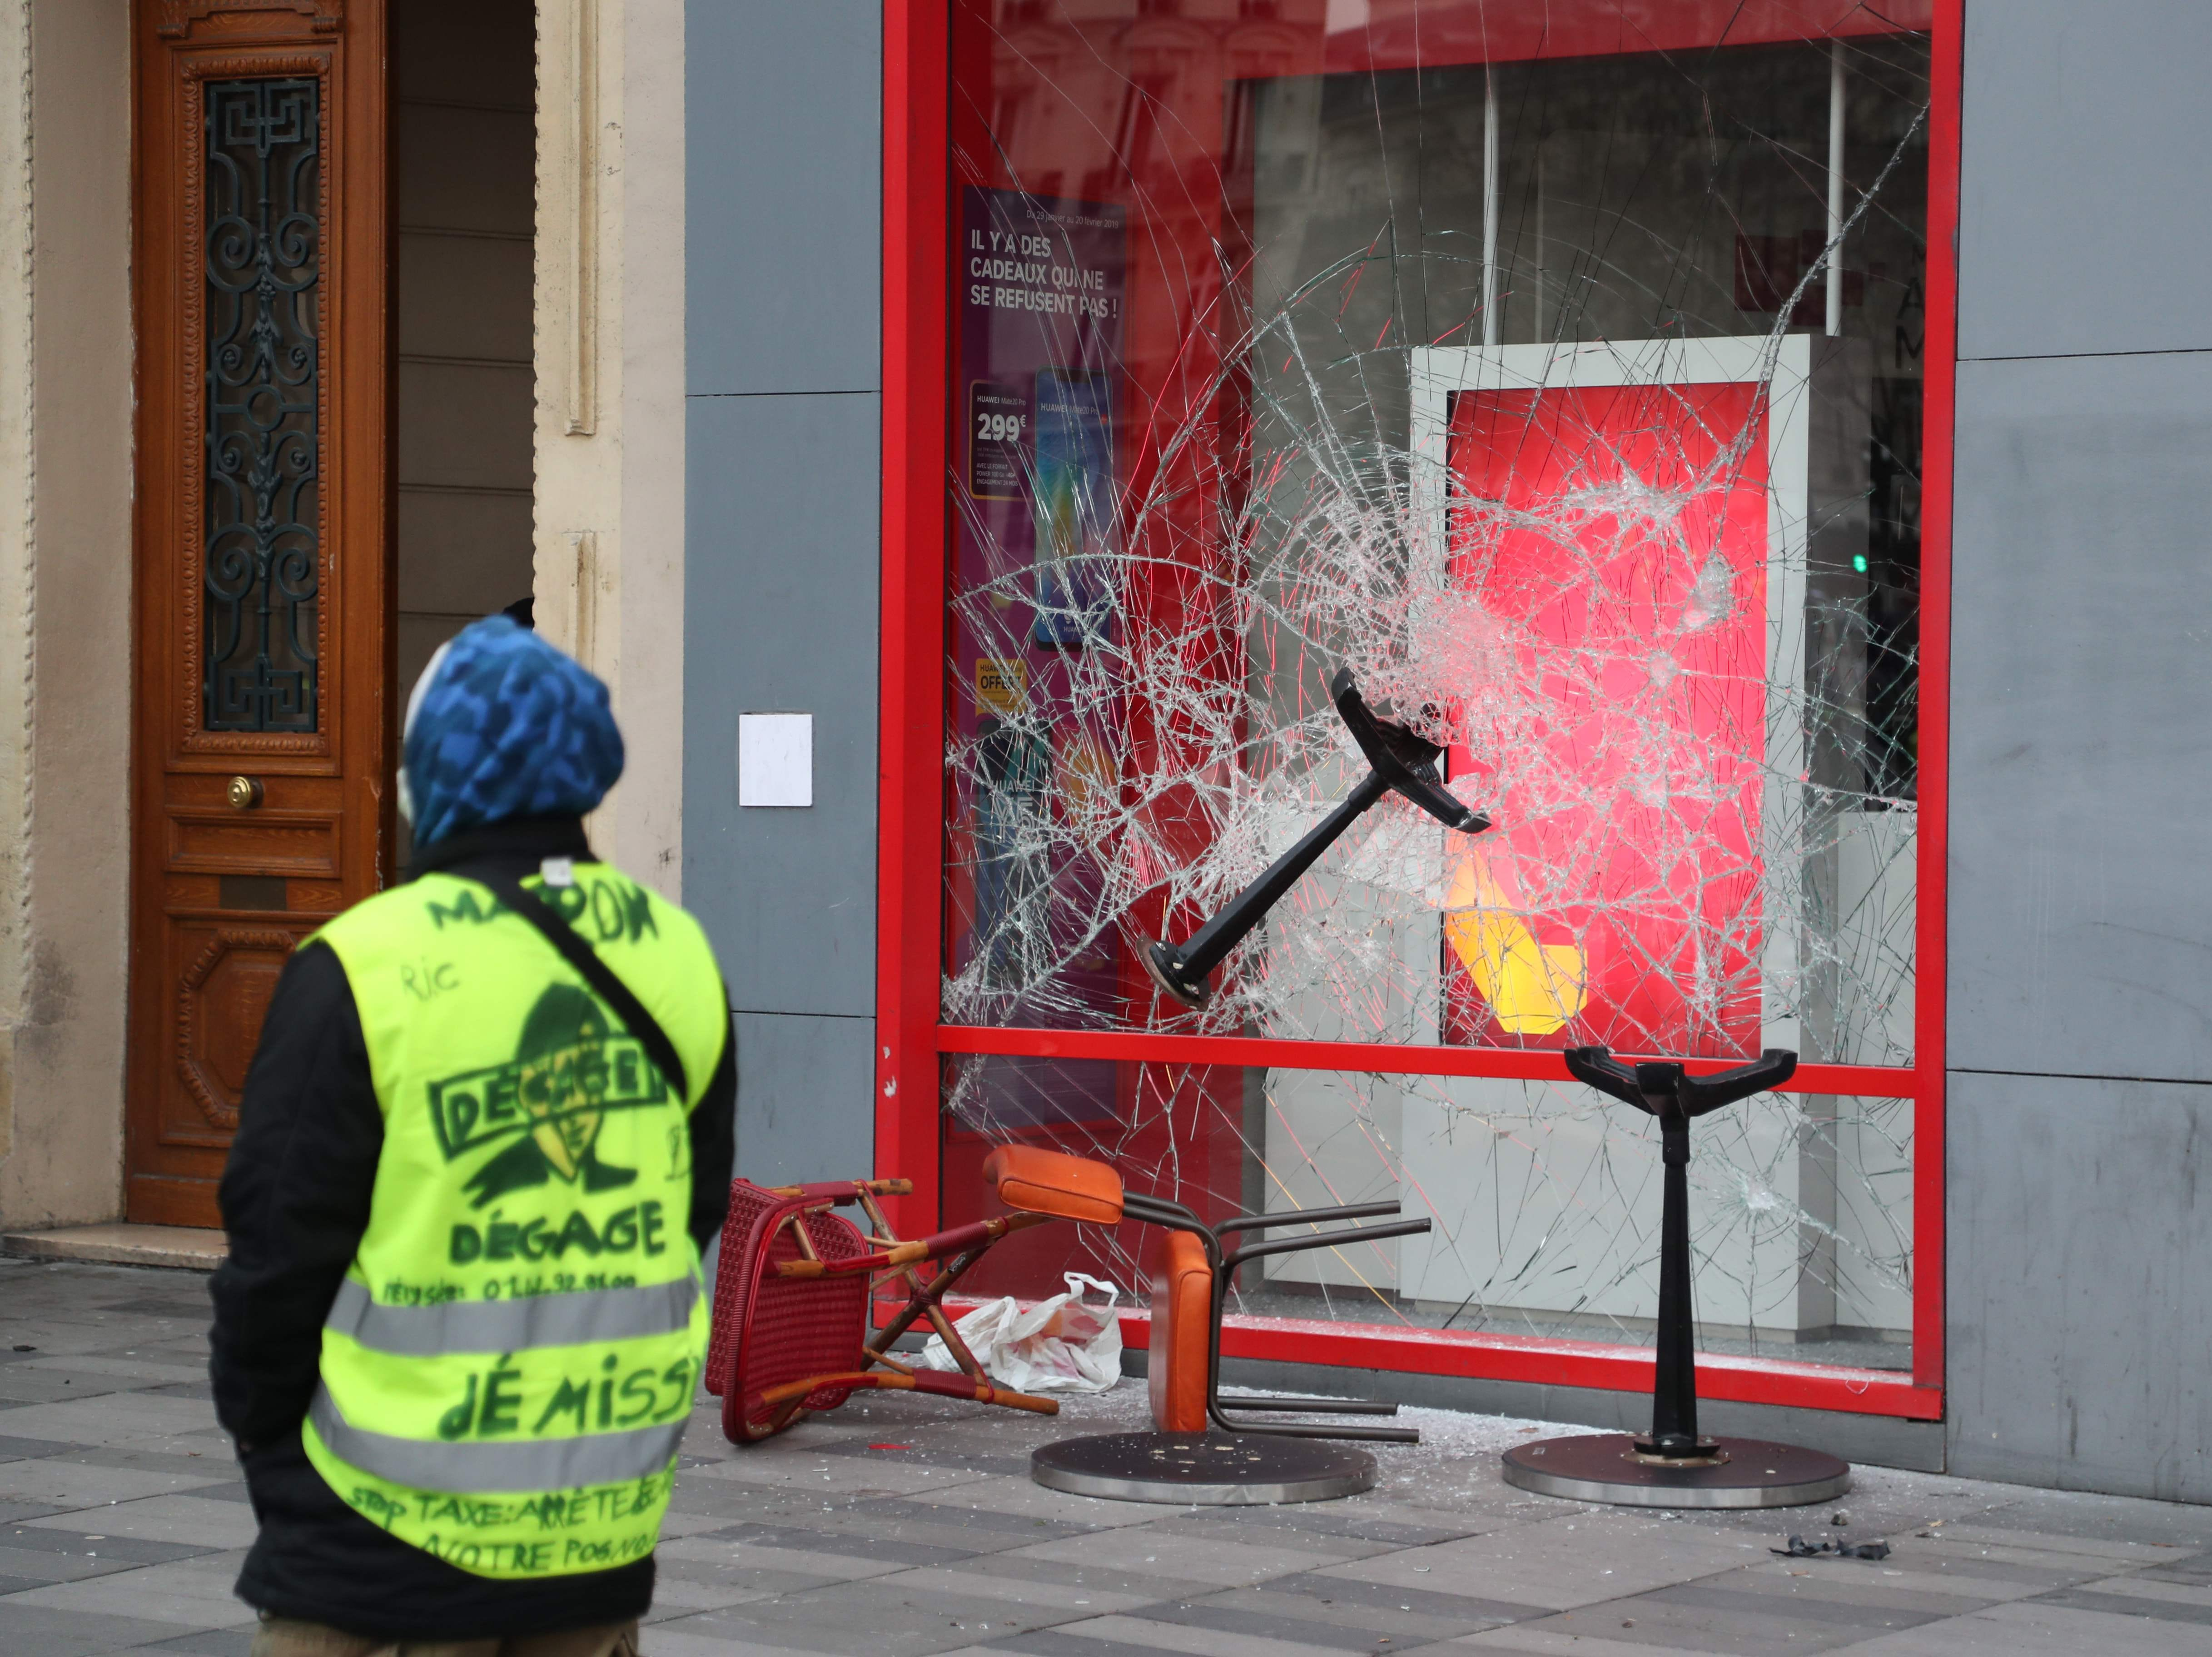 A protester walks past a vandalized shop window during clashes with police at Place de la Republique on Feb. 2, 2019 in Paris, on the sidelines of a march called to pacifically protest against police violence toward participants of the last three months demonstrations in France, as yellow vest protesters take to the streets for the 12th consecutive Saturday.